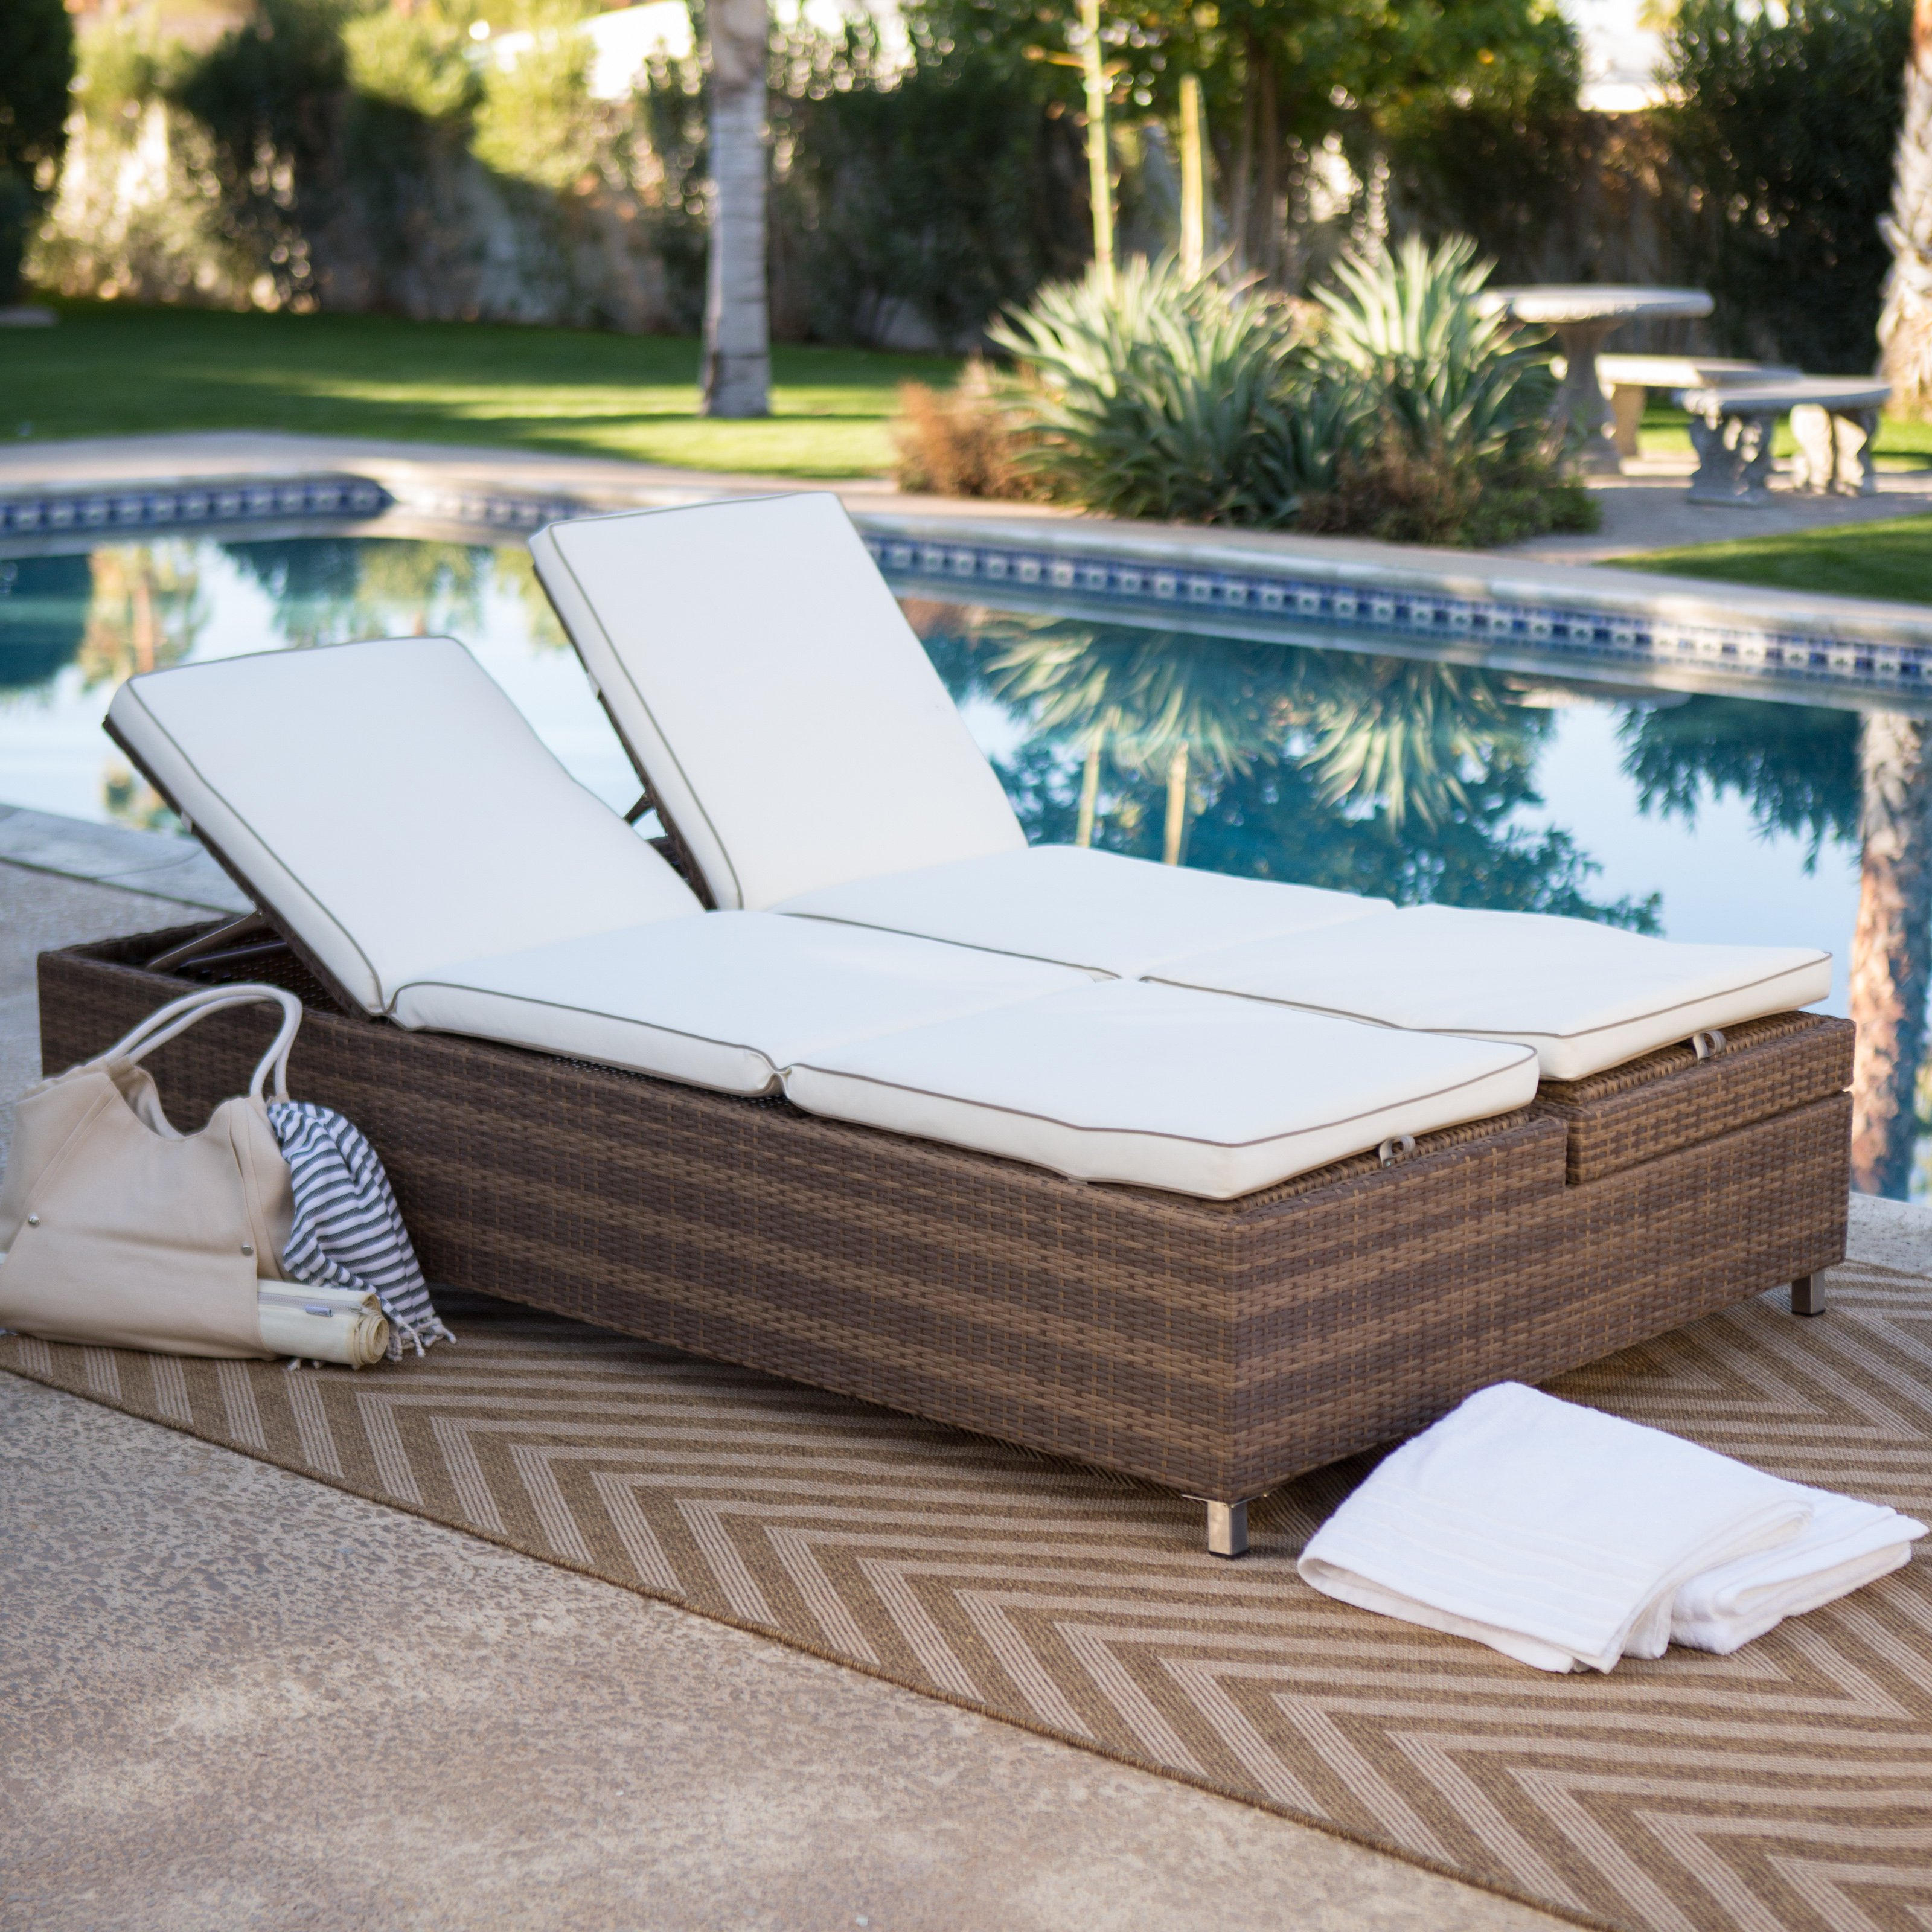 Current Licious Mainstays Outdoor Double Chaise Lounger Replacement Regarding All Weather Rattan Wicker Chaise Lounges (View 13 of 25)